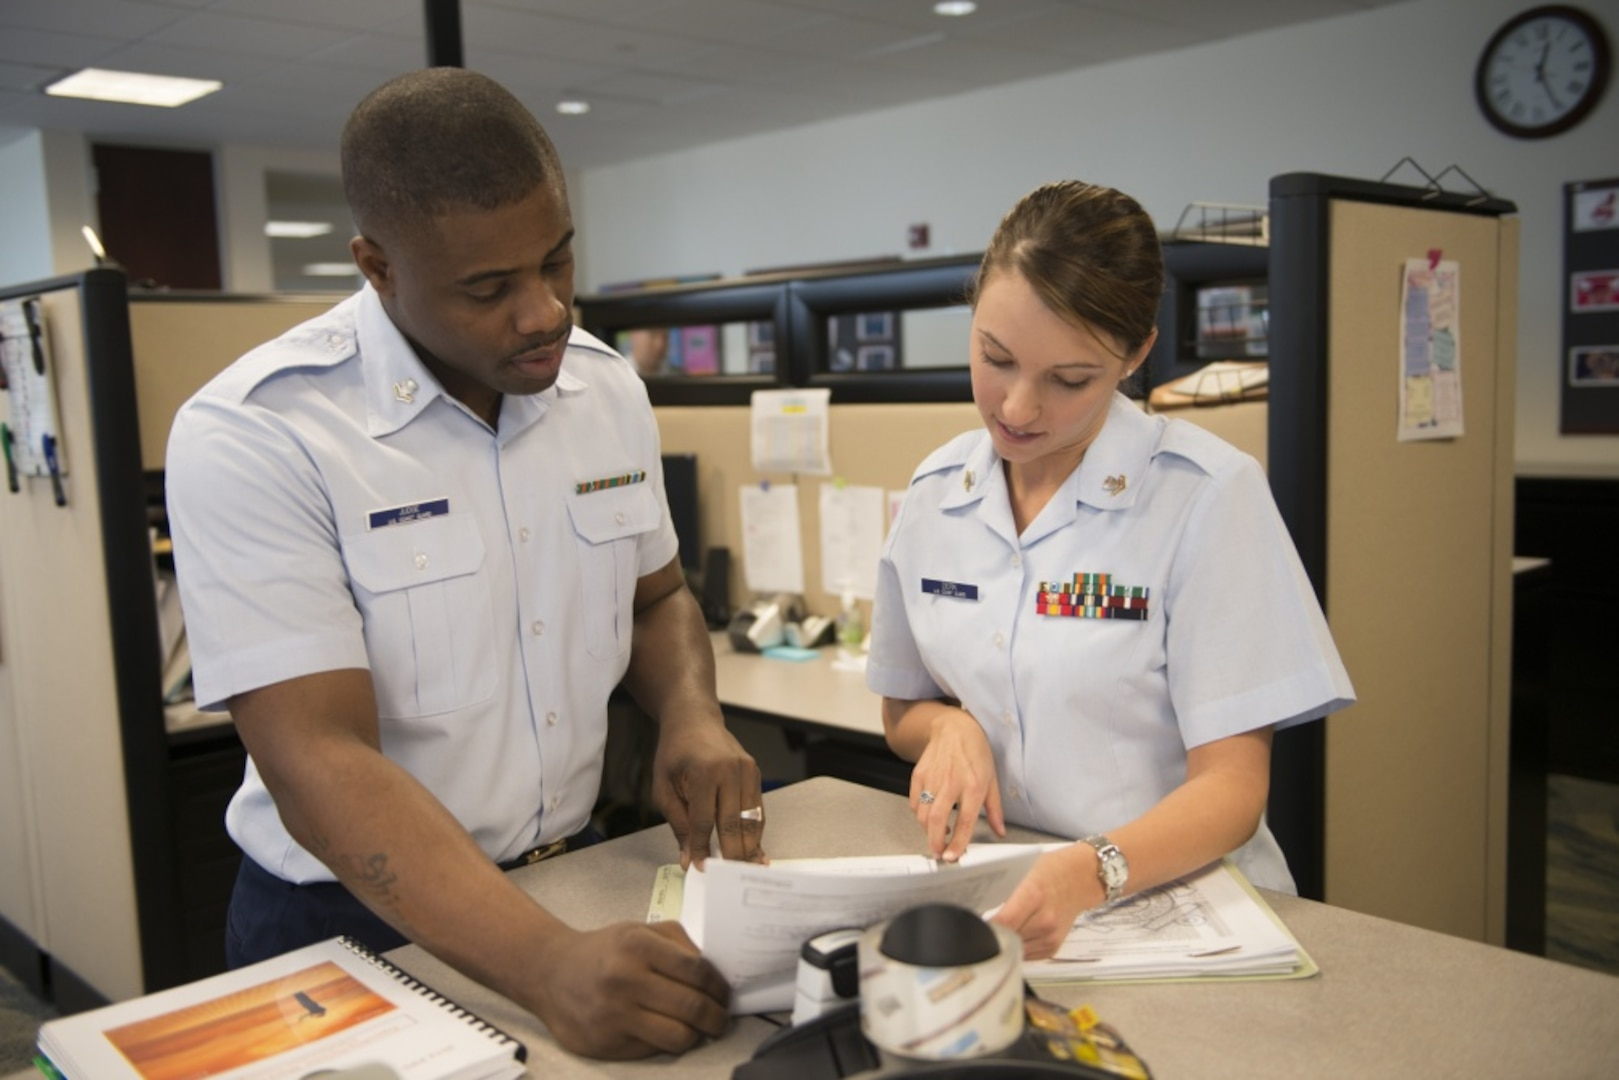 ARLINGTON, Va. - A Coast Guard yeoman assists a fellow Coast Guardsman at the Coast Guard Recruiting Command, February 20, 2013. YNs are key problem-solvers, counselors, and sources of information to personnel on questions ranging from career moves, entitlements, and incentive programs to retirement options and veterans' benefits. U.S. Coast Guard photo by Petty Officer 1st Class Luke Pinneo